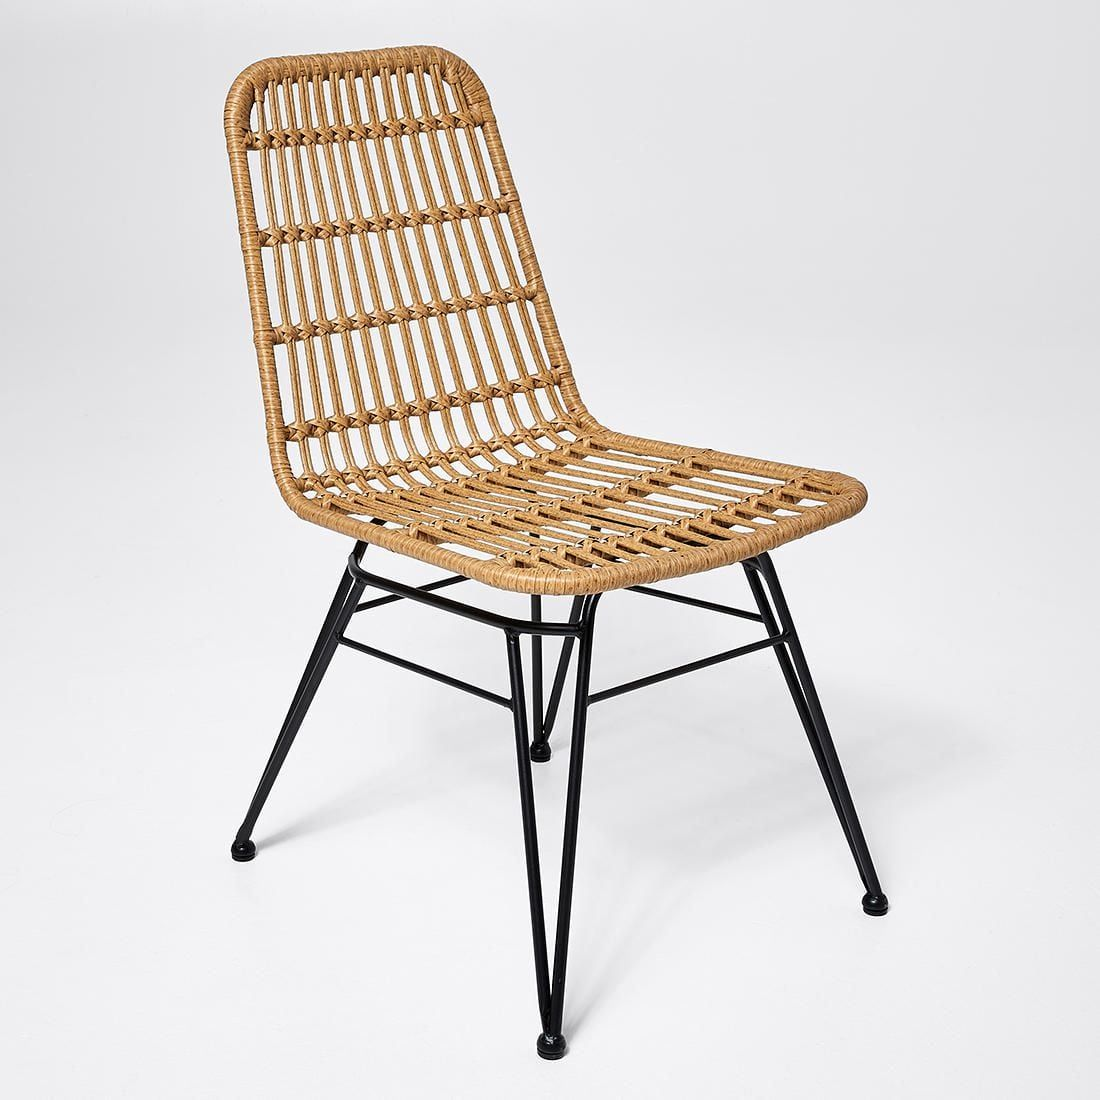 Target Australia Furniture Woven Rattan Dining Chair In 2019 New House Inspo Pinterest